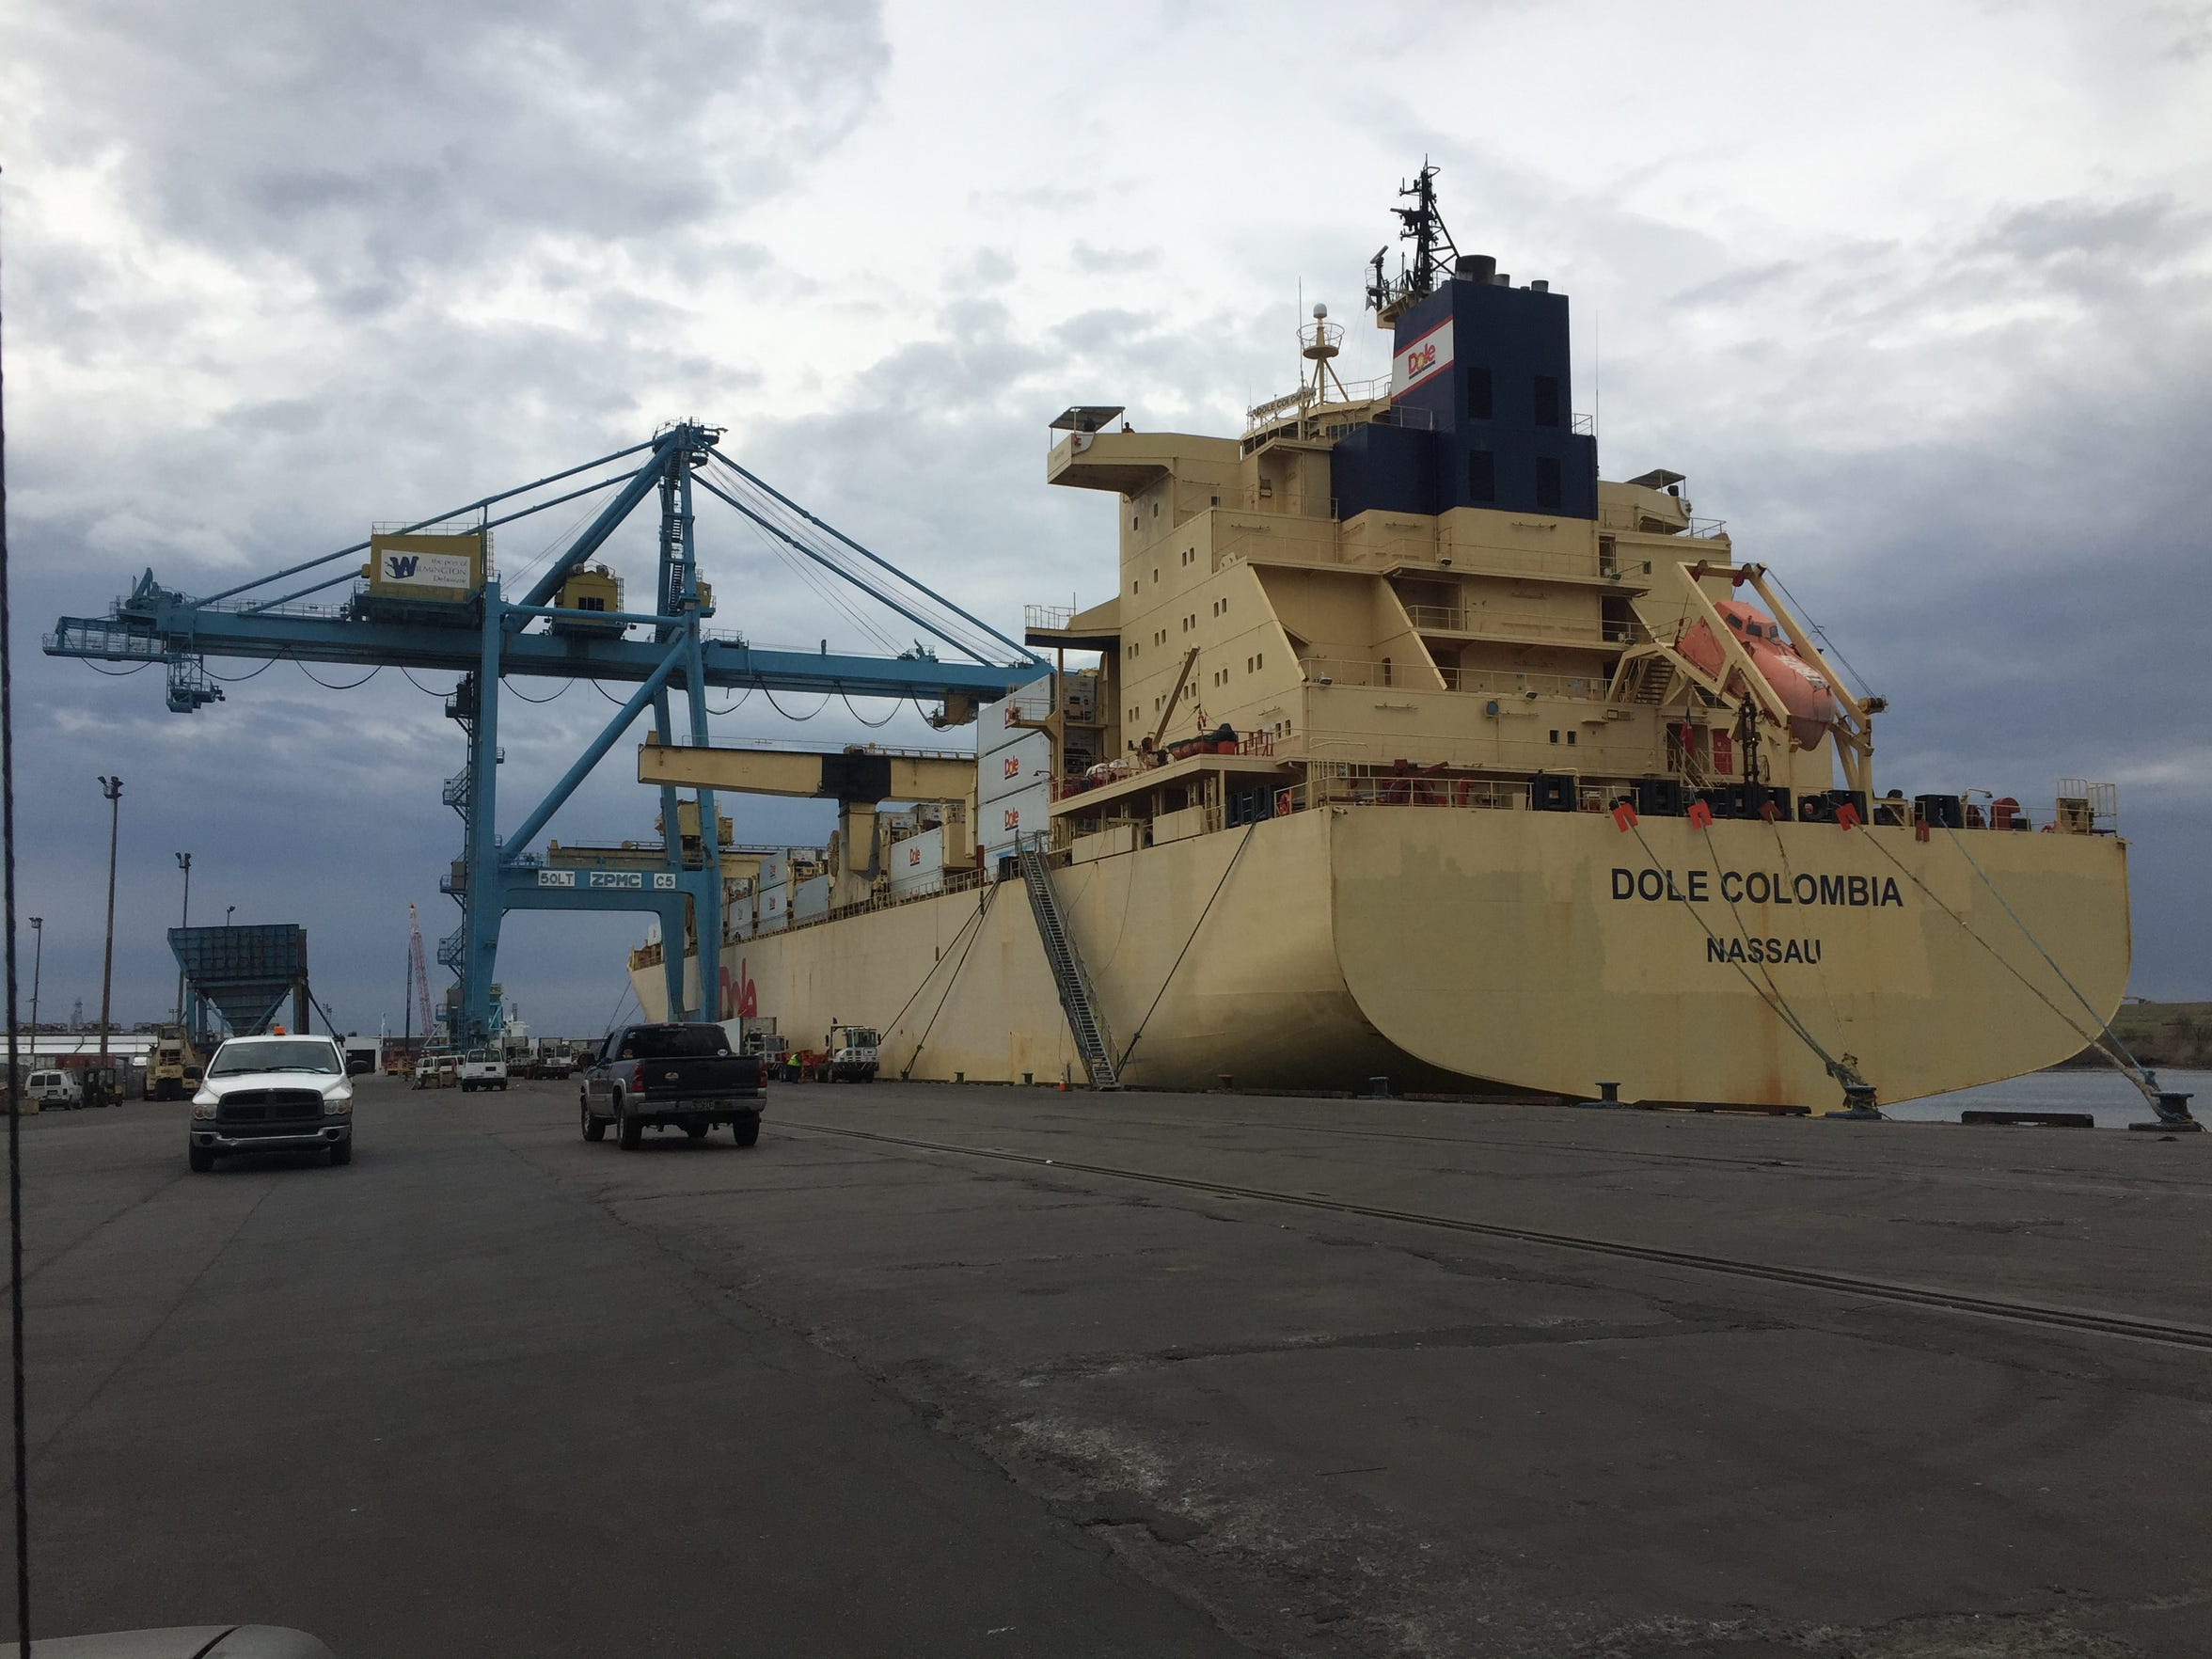 The Dole Columbia offloads at the port of Wilmington in April. Port officials are considering how to grow the facility in the coming decade.